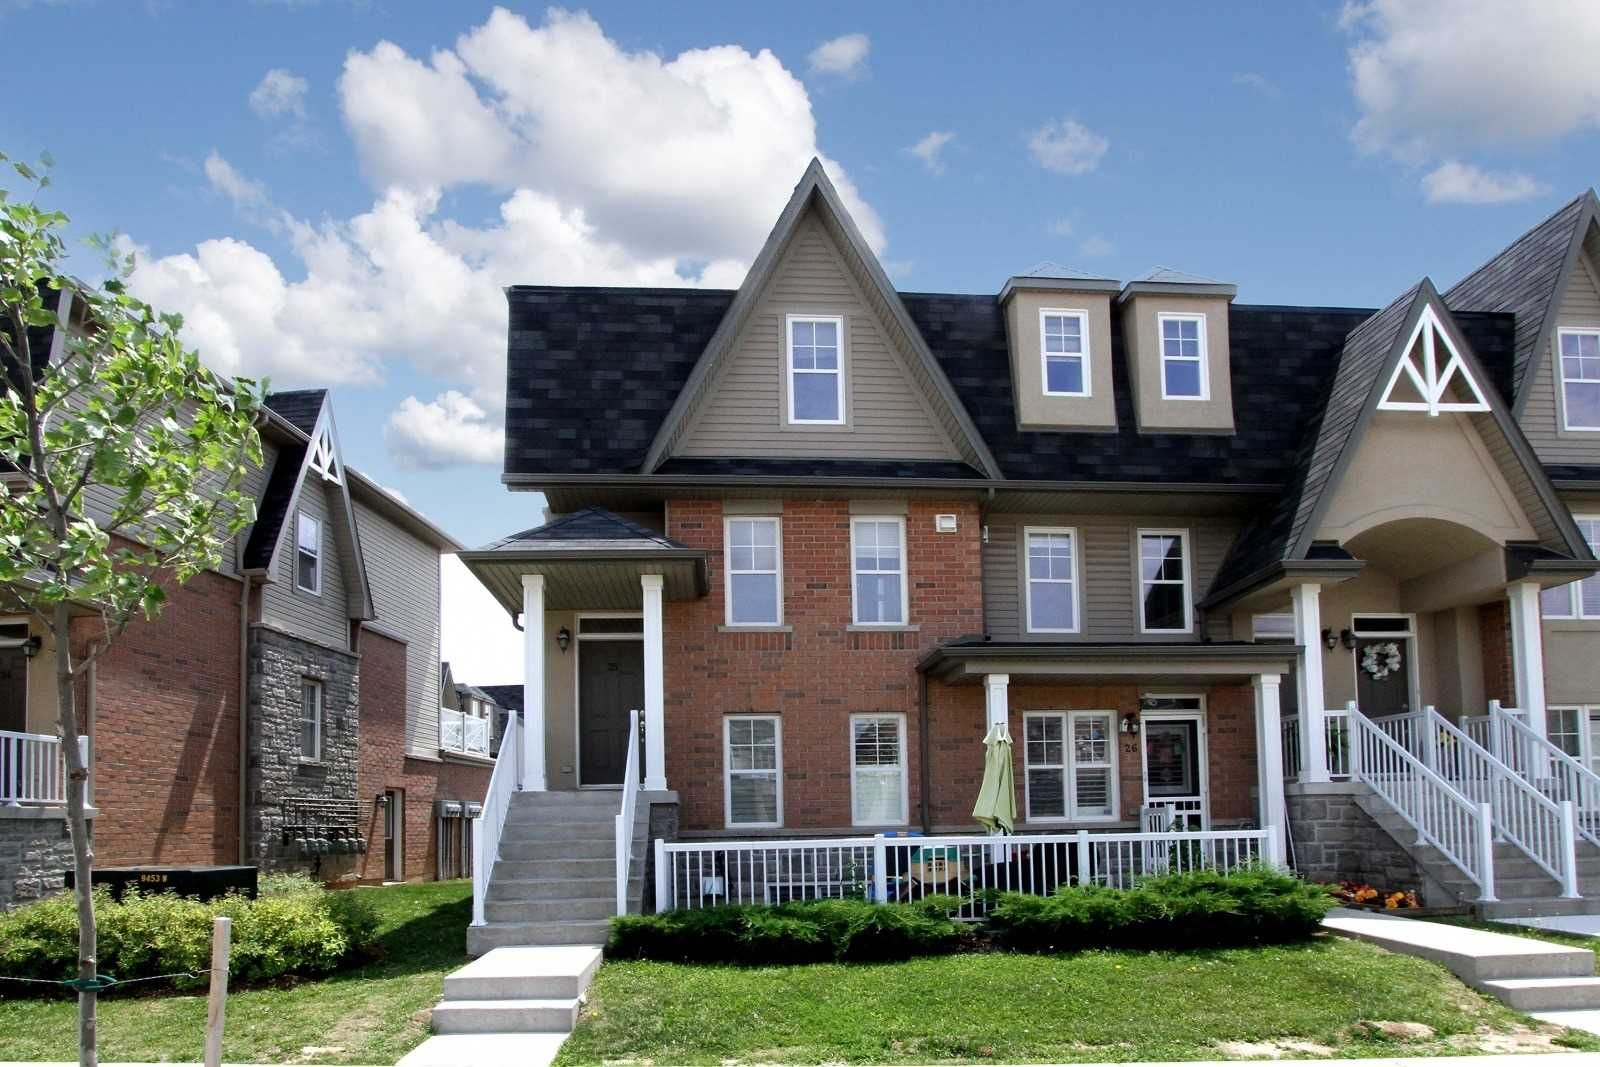 1380 Costigan Rd, unit 25 for sale in Toronto - image #1